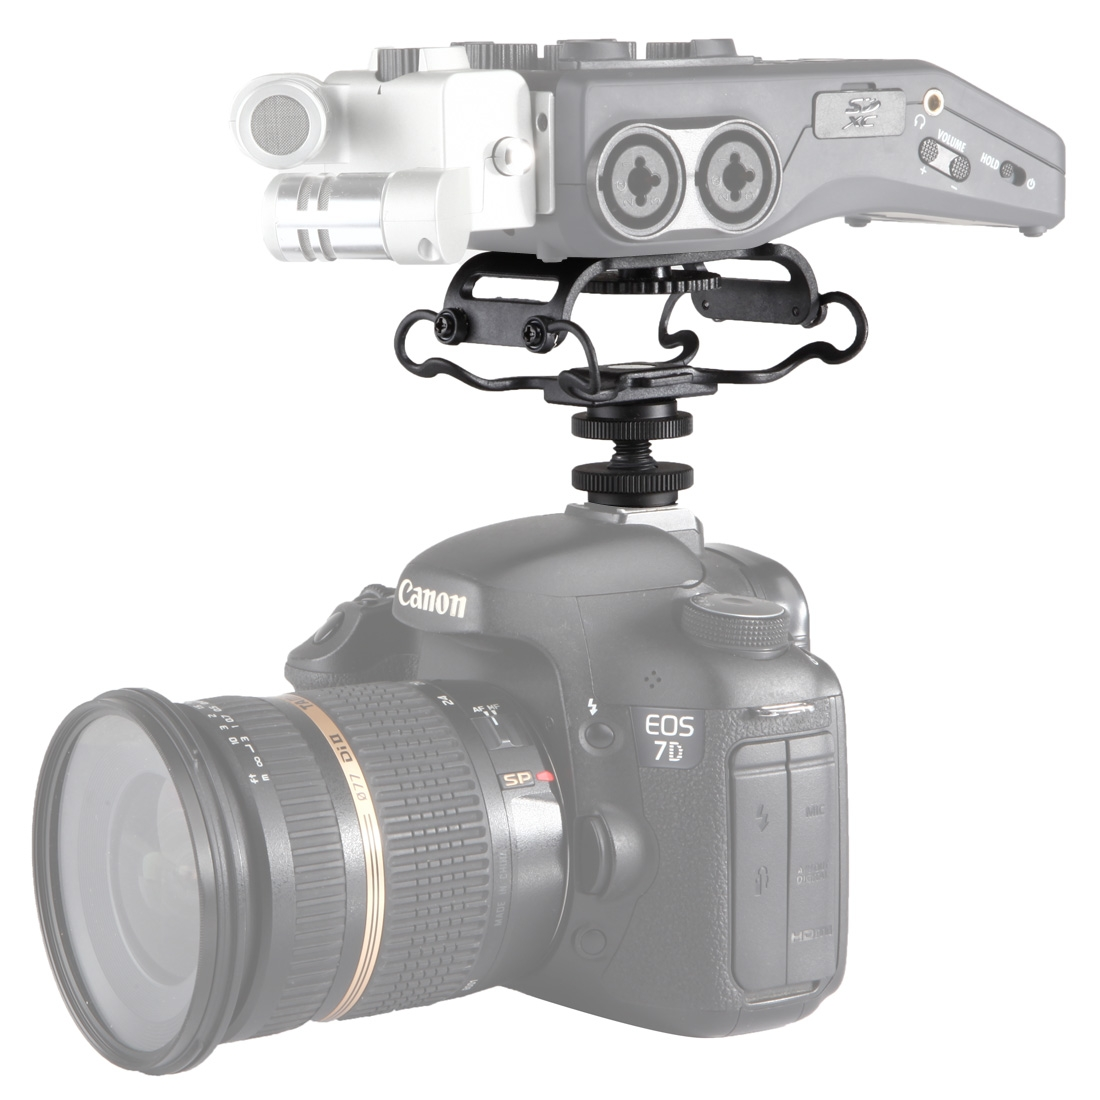 BOYA BY-C10 Universal Camera Microphone Shockmount with Hot Shoe Mount (Black)